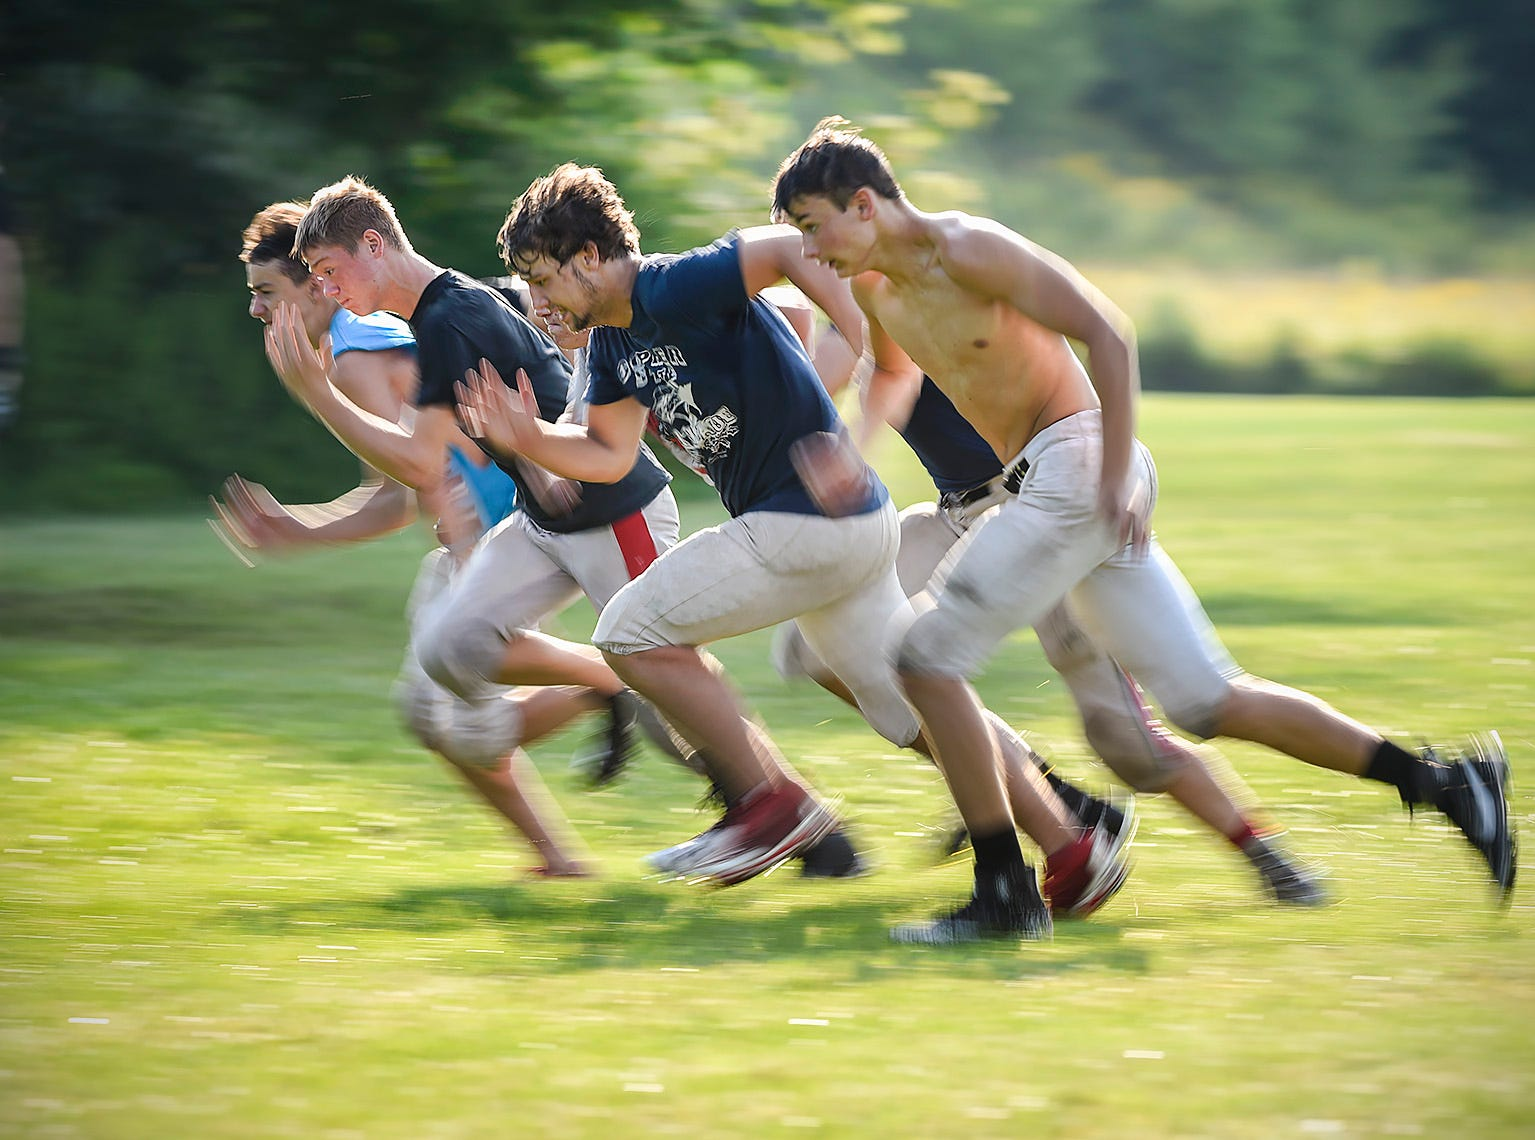 Milaca players run conditioning sprints during practice Thursday, Aug. 16, in Milaca.